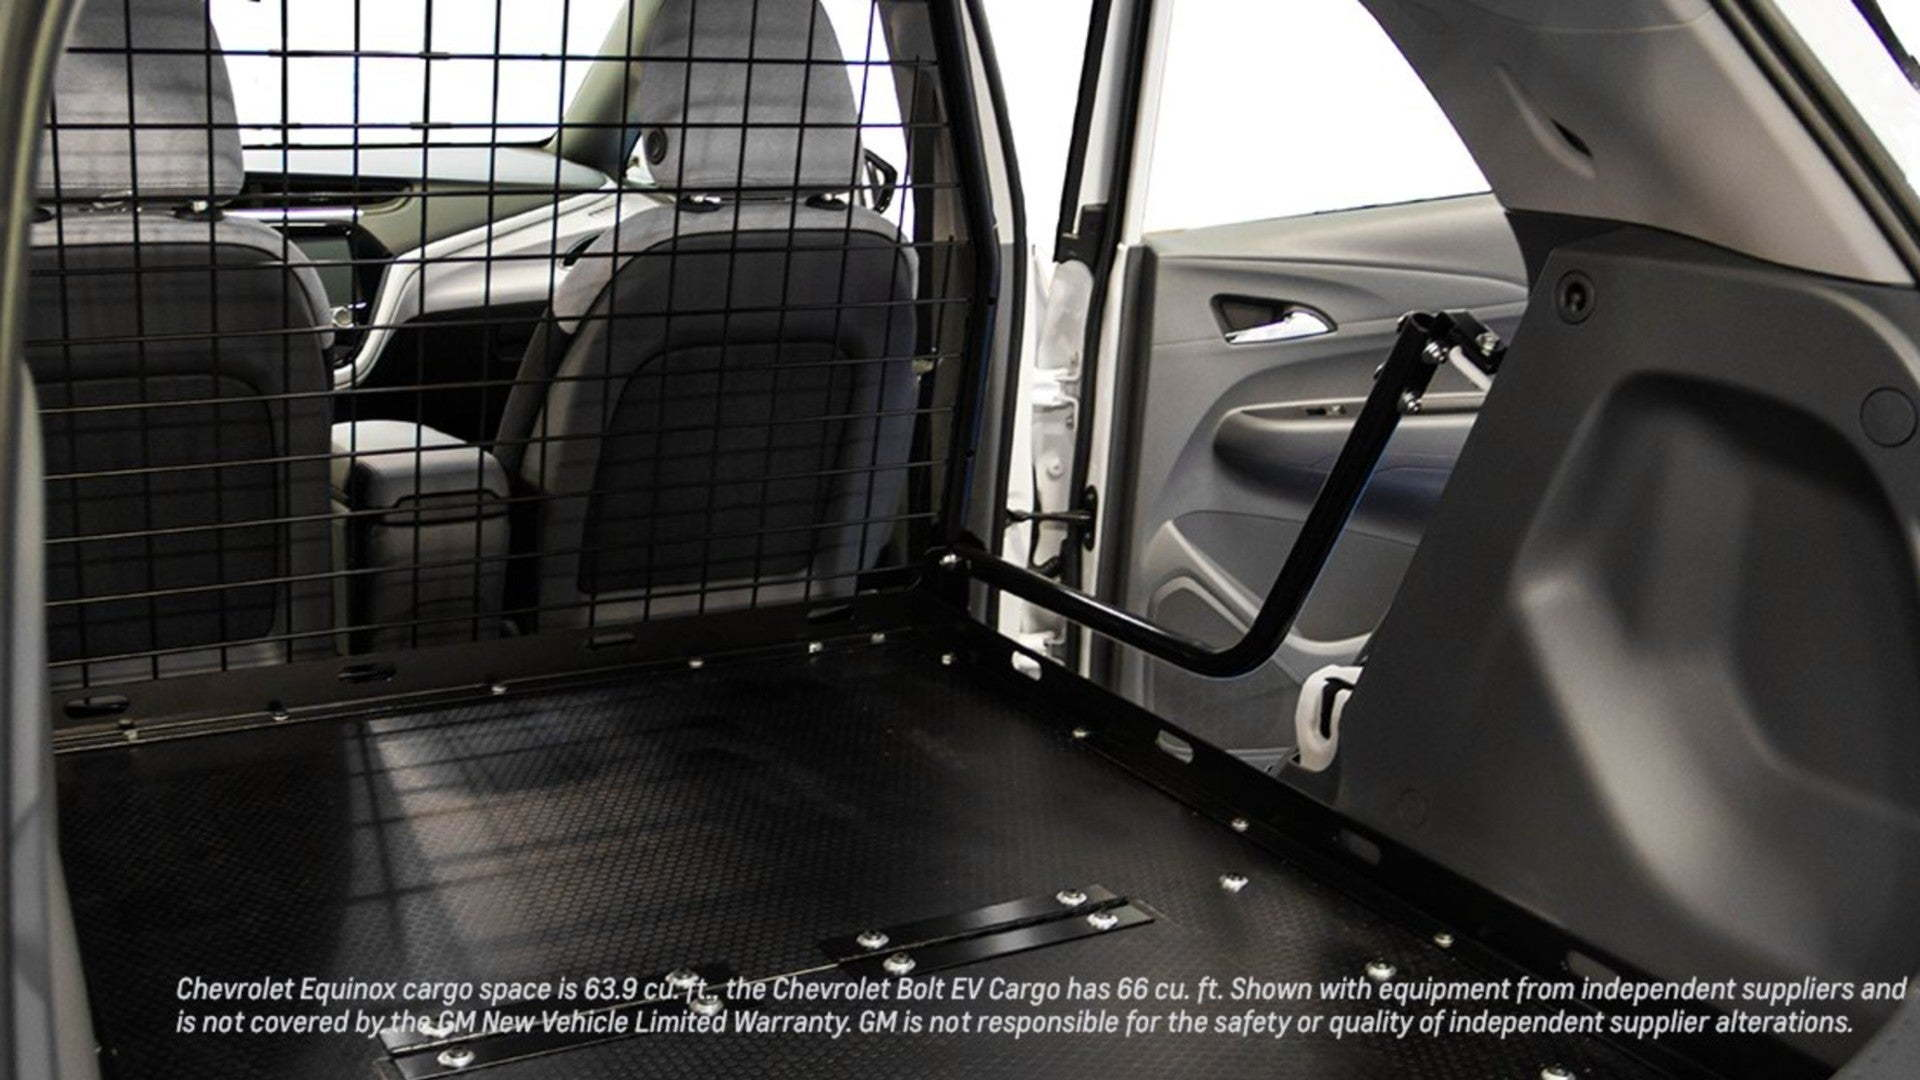 Chevrolet Bolt EV cargo van conversion